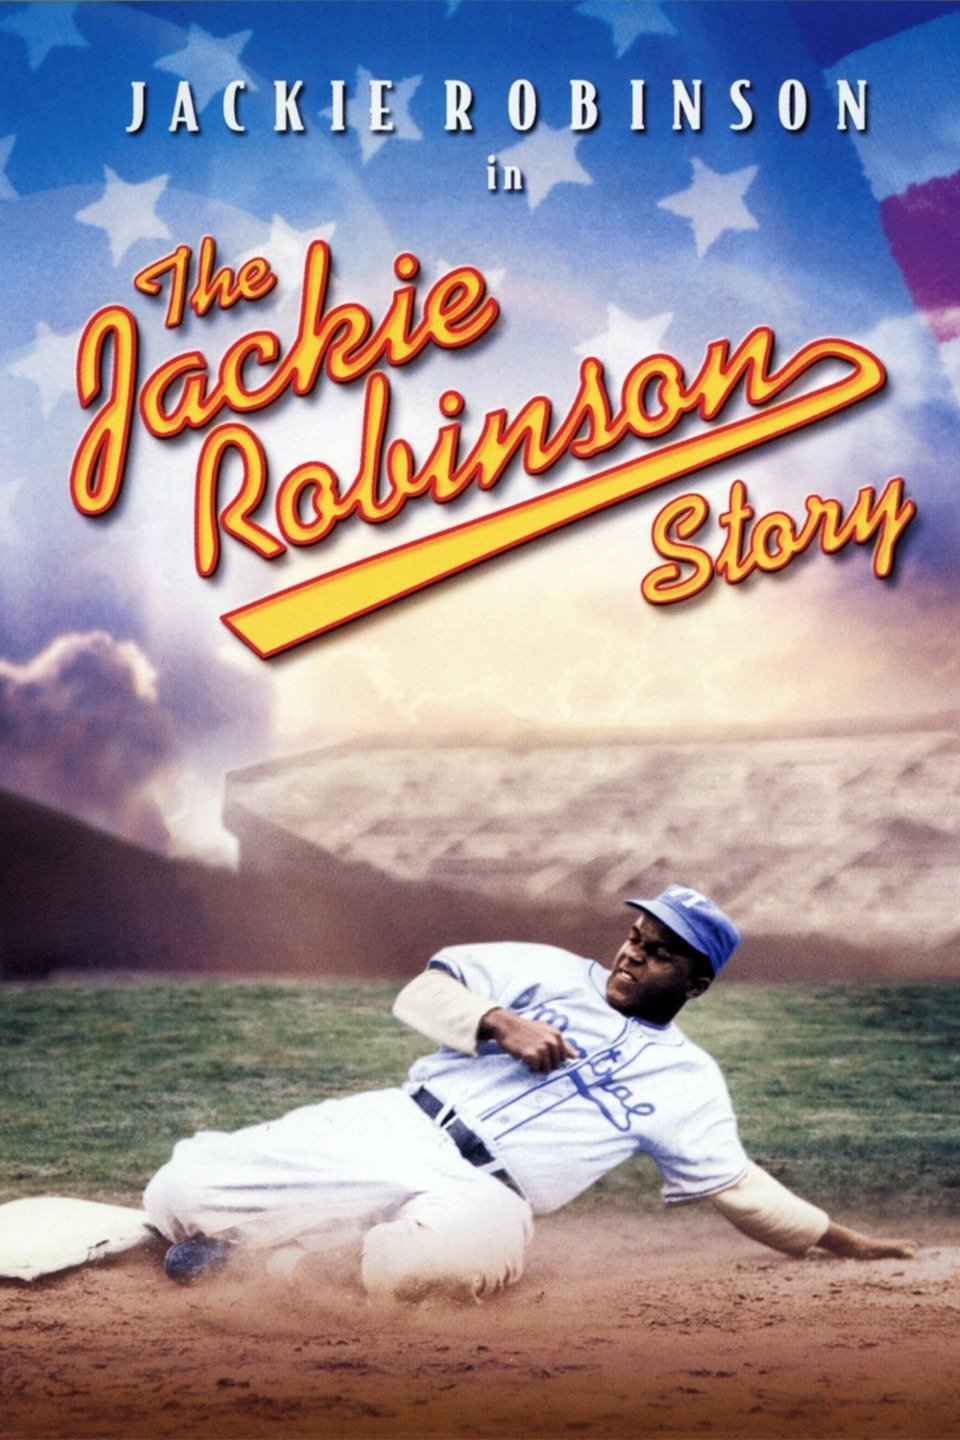 an analysis of the movie jackie robinson story 42 (2013) by dolph briscoe iv the new film 42 tells the story of jackie robinson's heroic effort to integrate major league baseball.